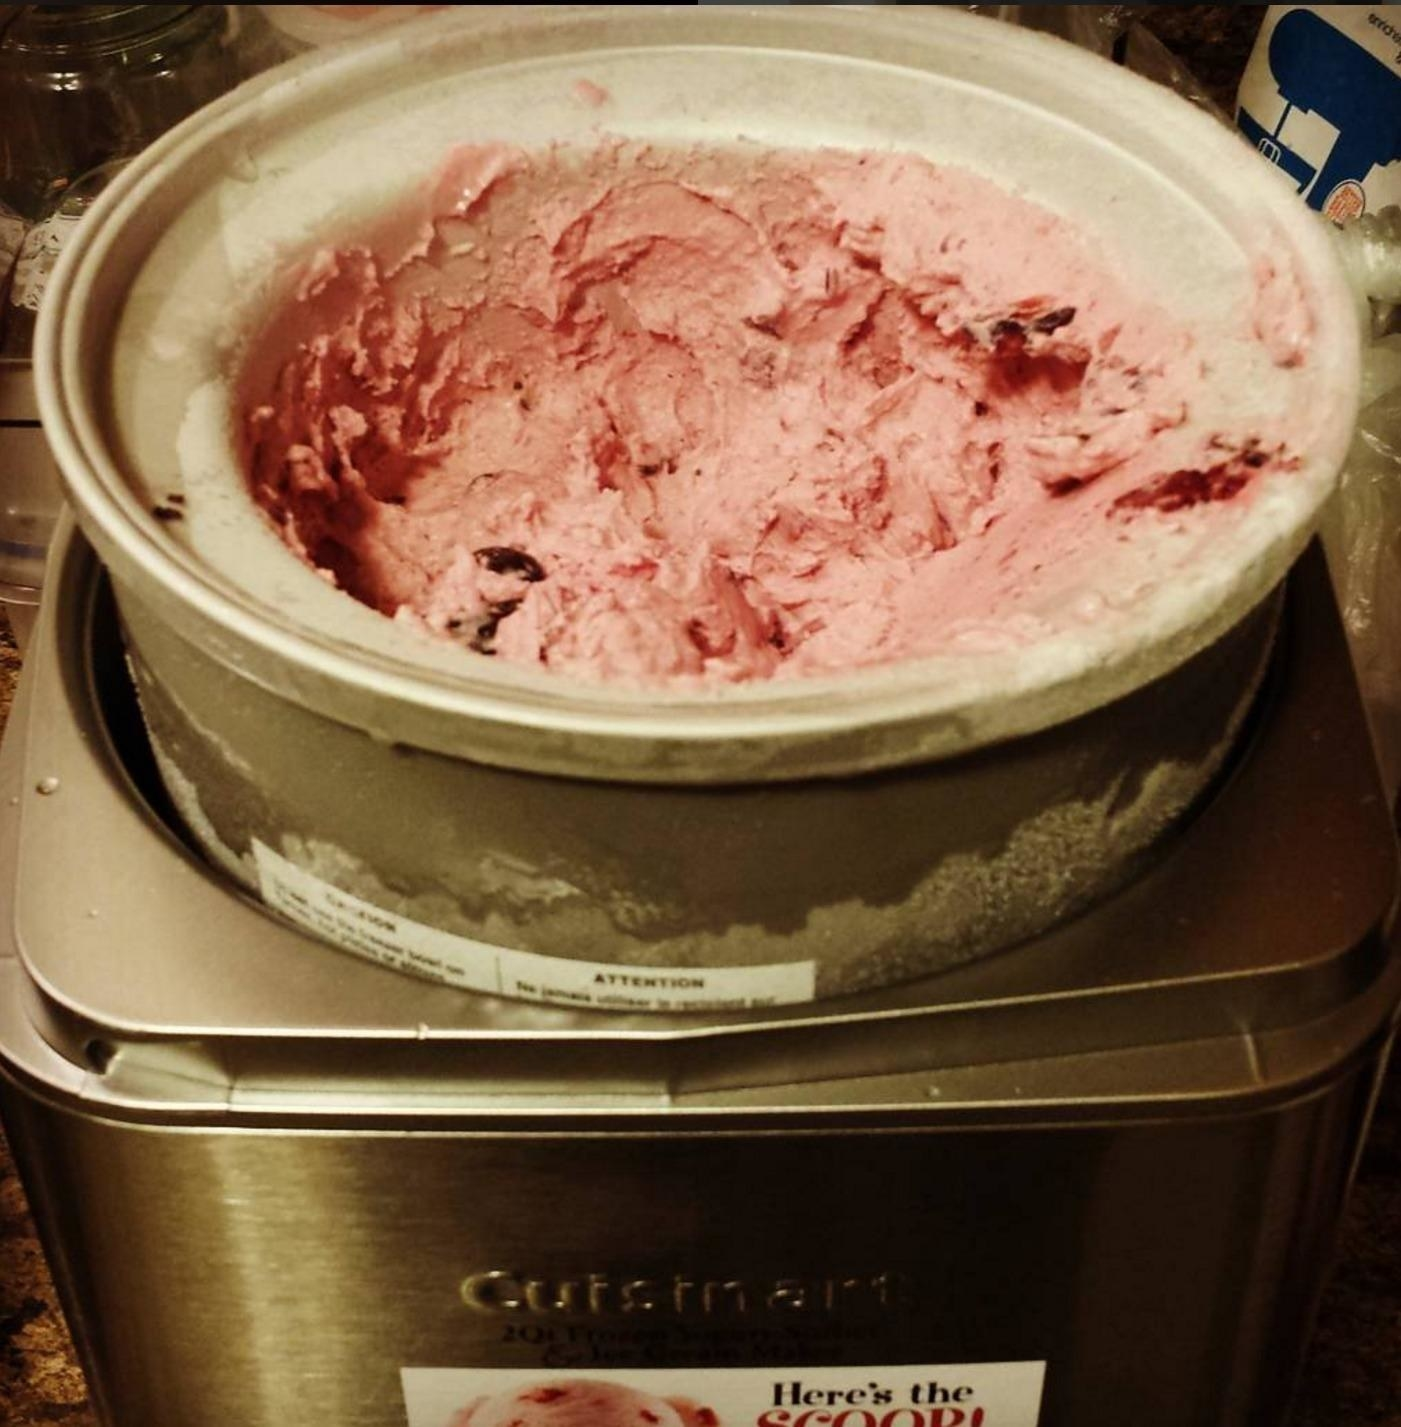 A reviewer photo of the machine in use, making strawberry ice cream